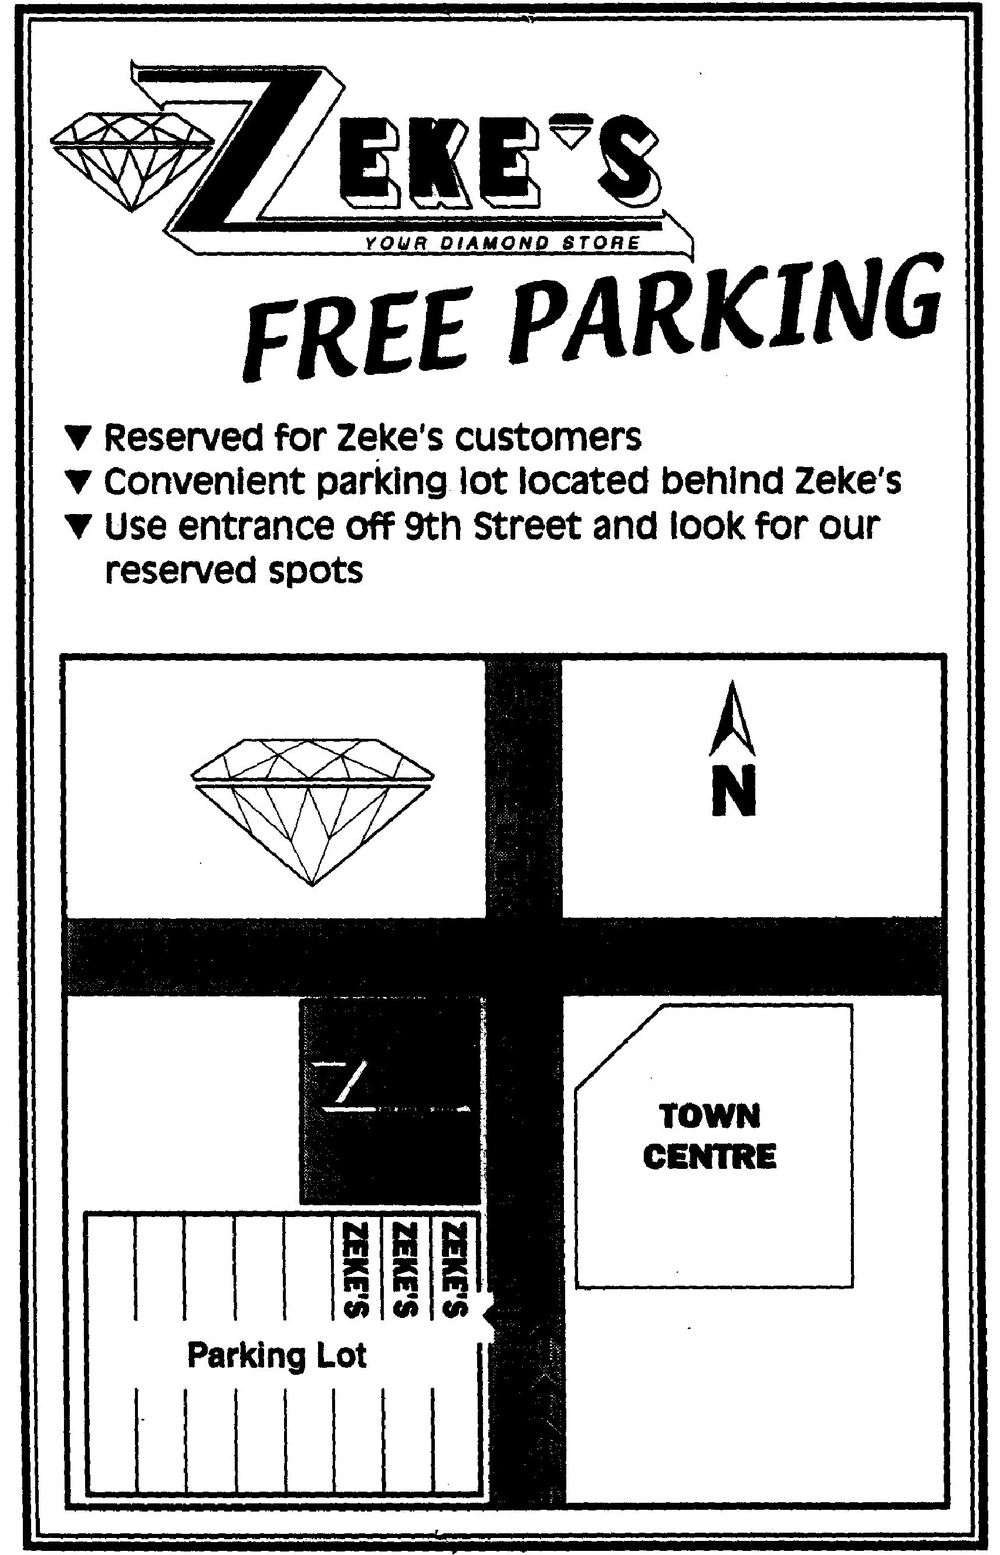 Zeke's Free Parking Map